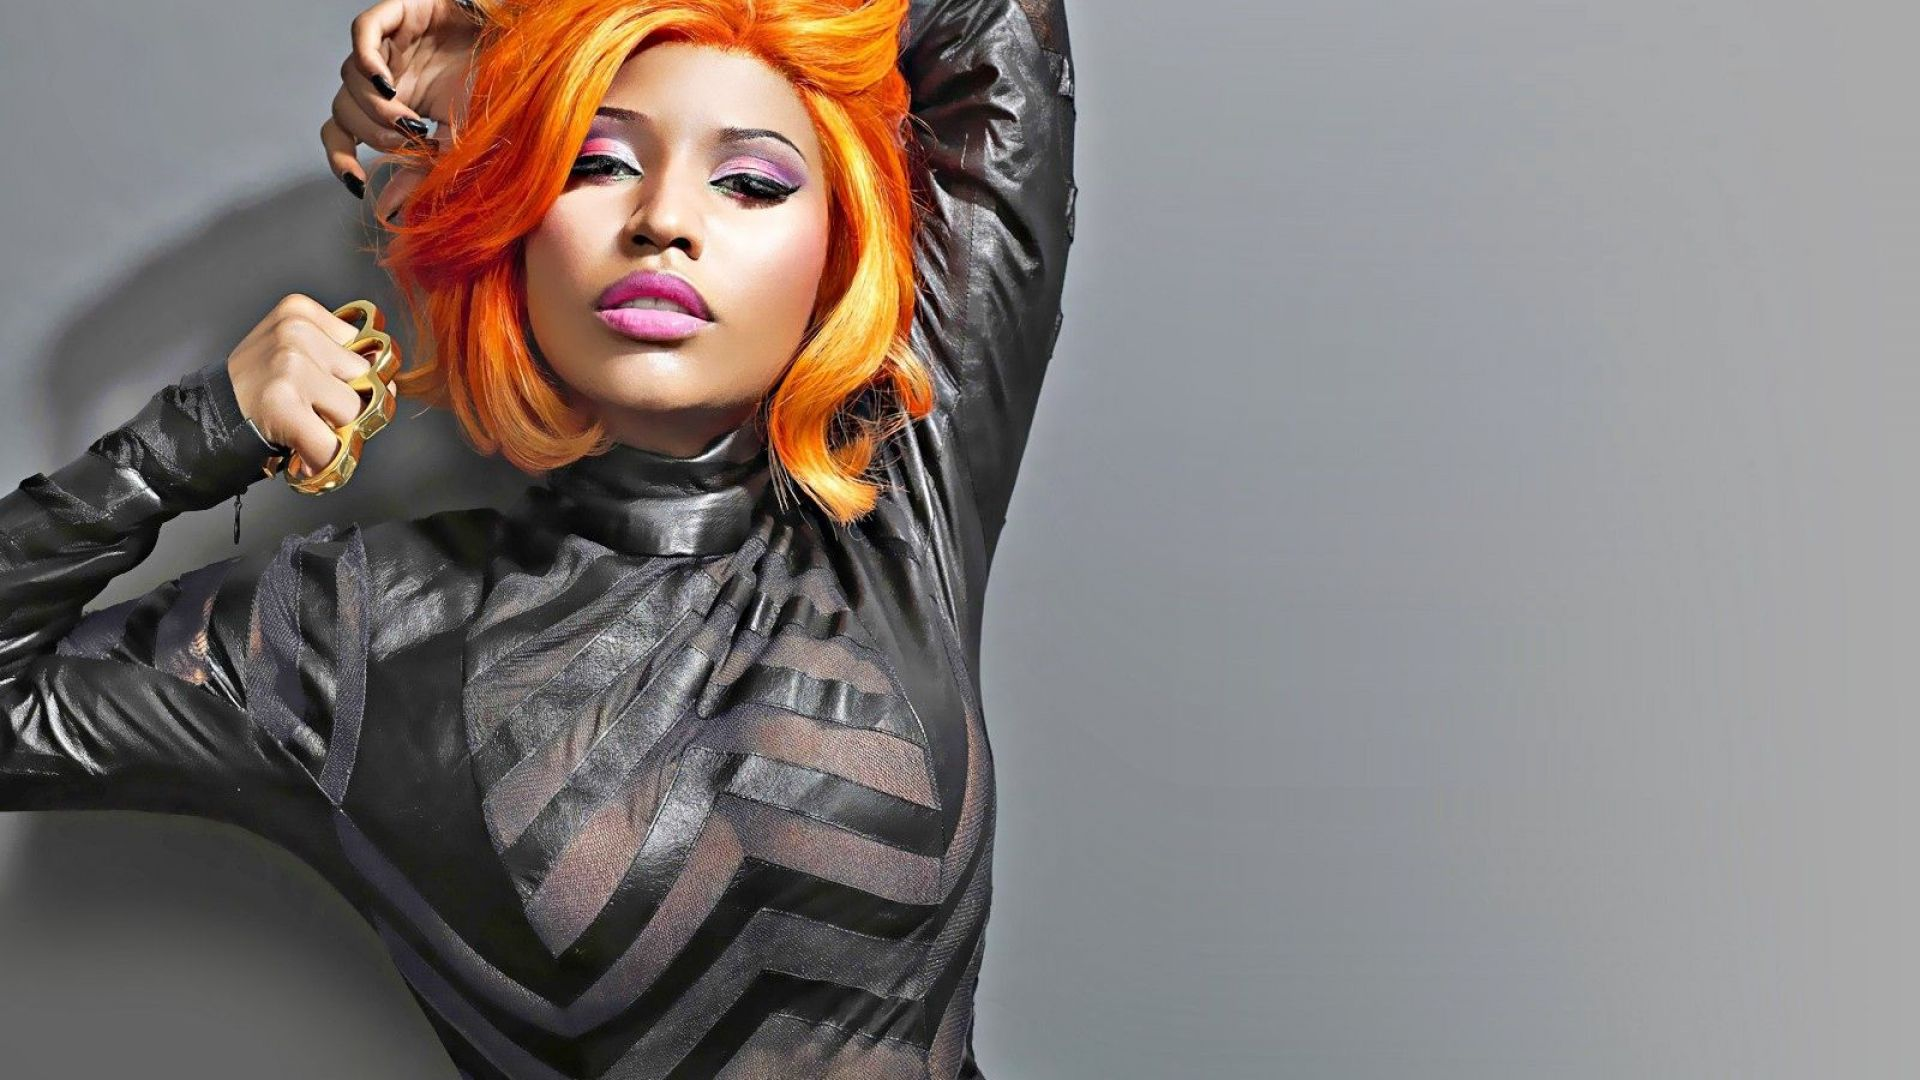 Download Free Nicki Minaj Wallpapers 1920x1080 px